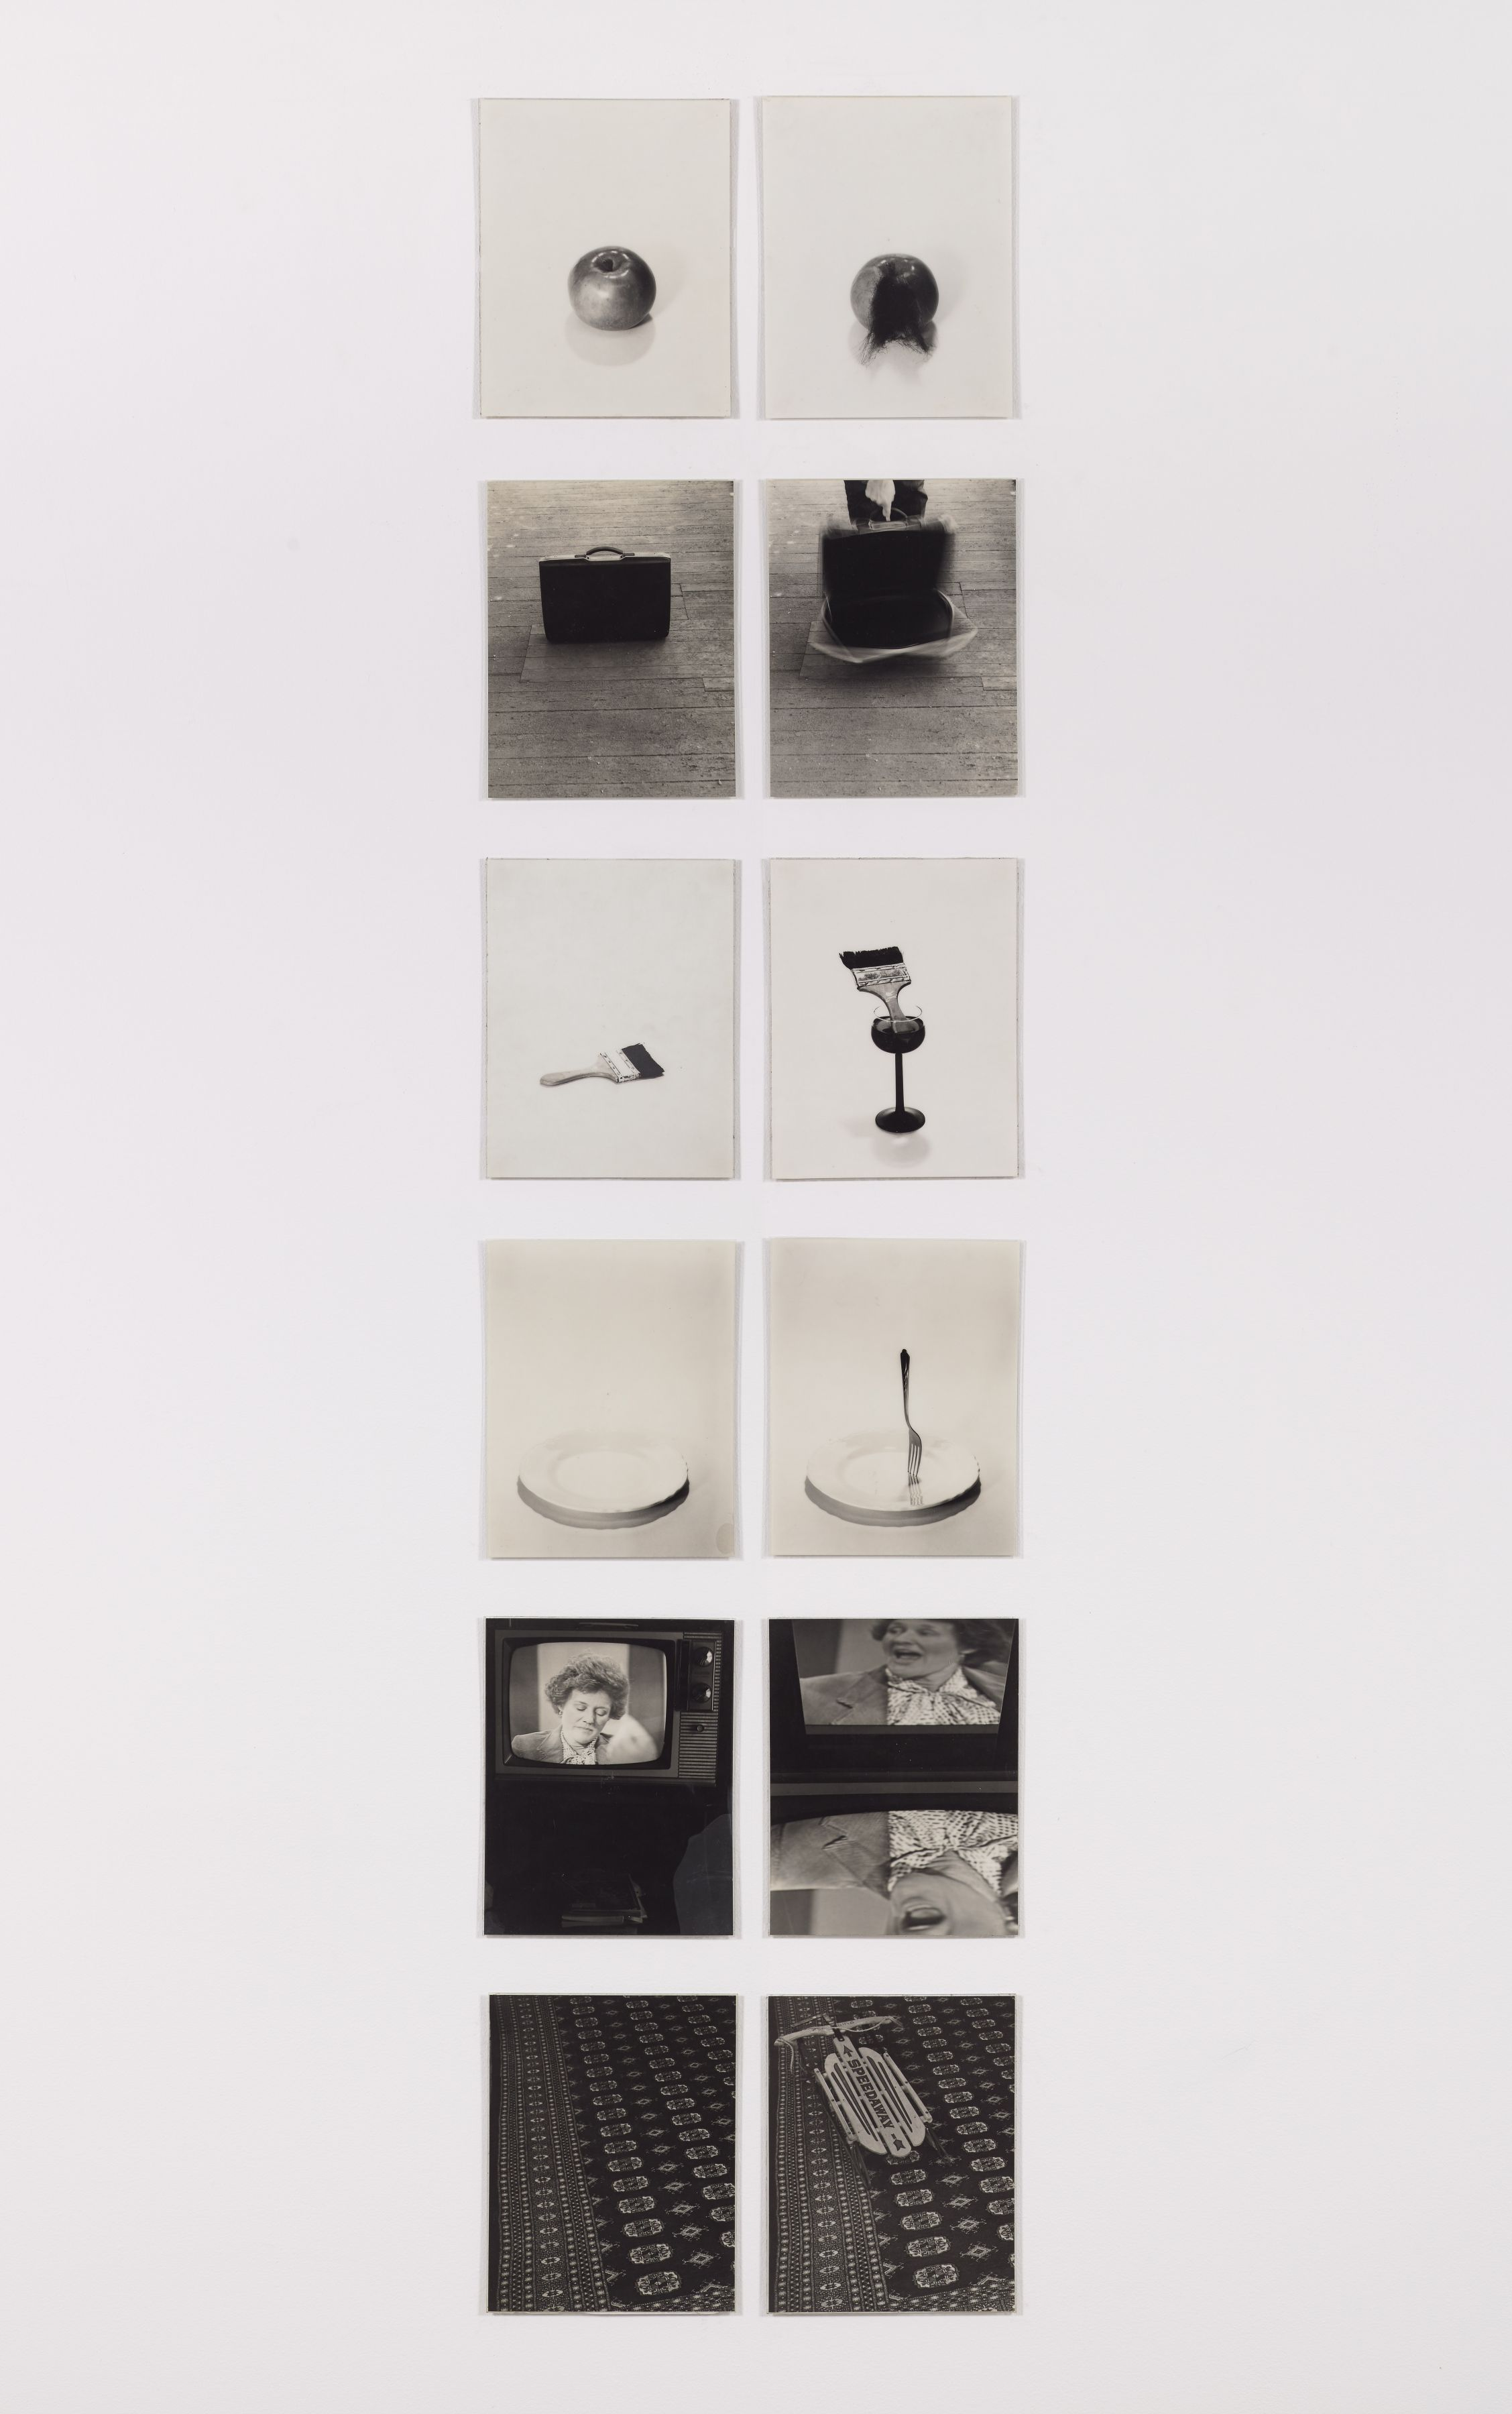 Questions and Answers, 1981, Laminated silver gelatin prints, 11h x 8.19w in (27.94h x 20.80w cm)